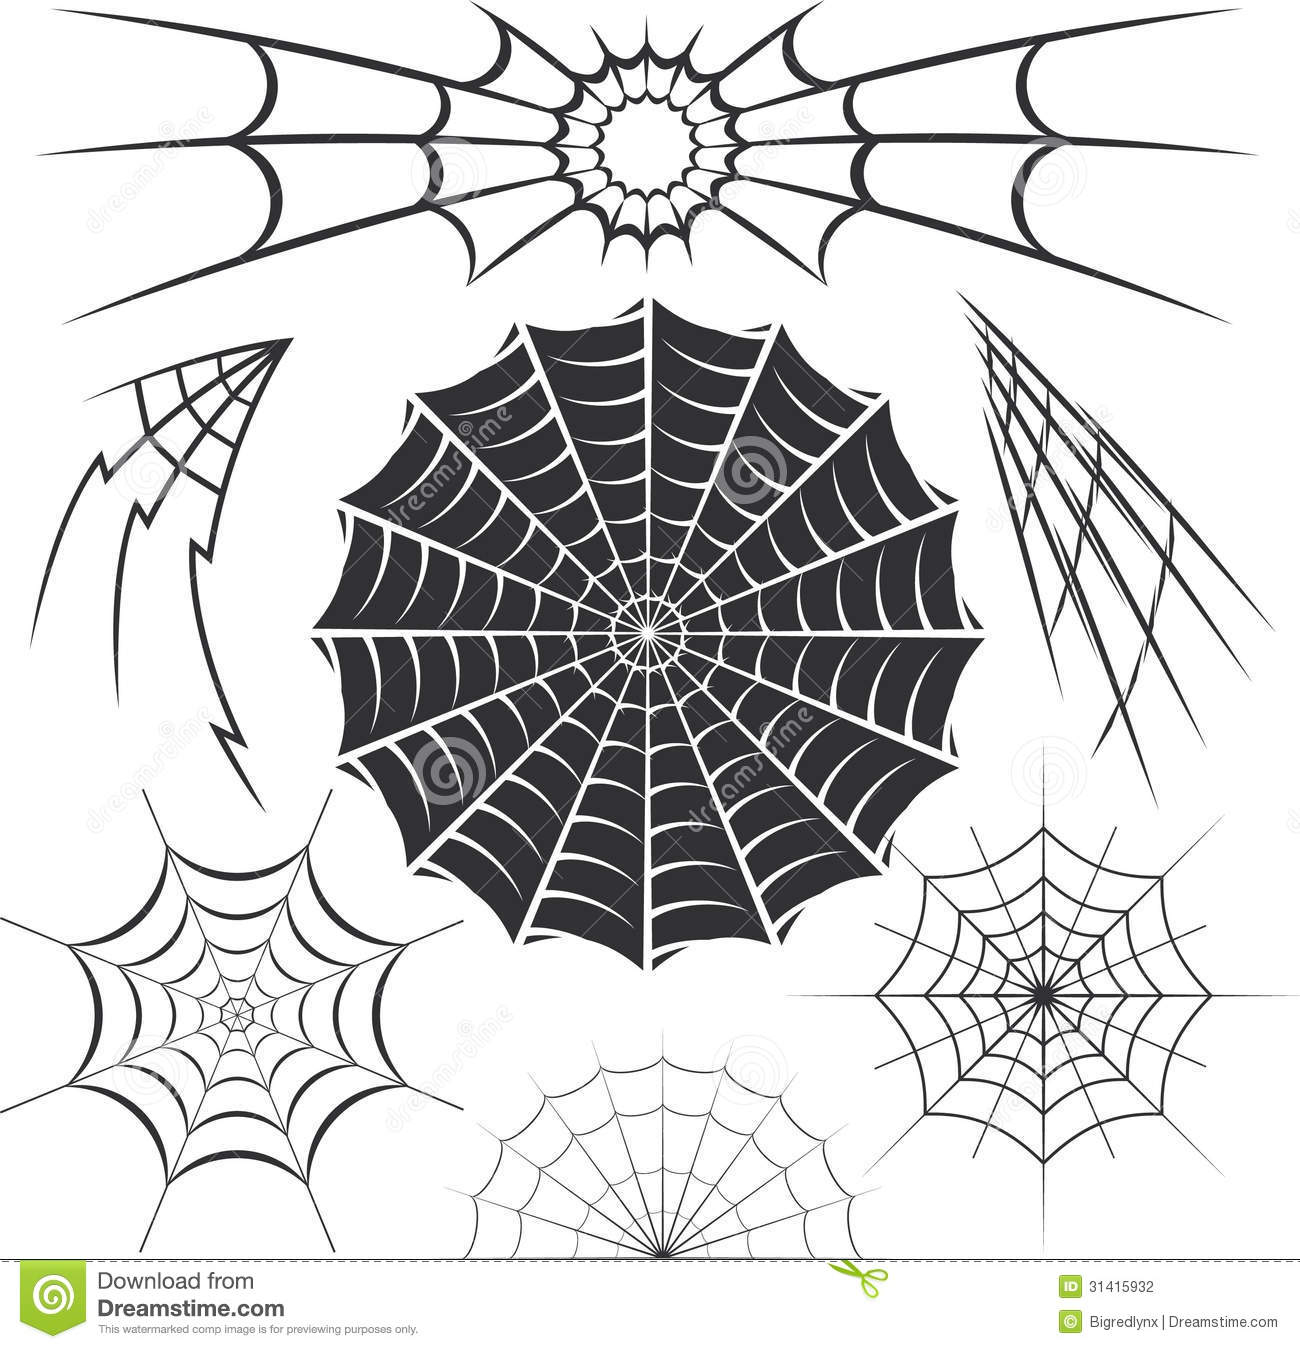 Spider webs stock vector illustration of elements for Cool drawing websites free